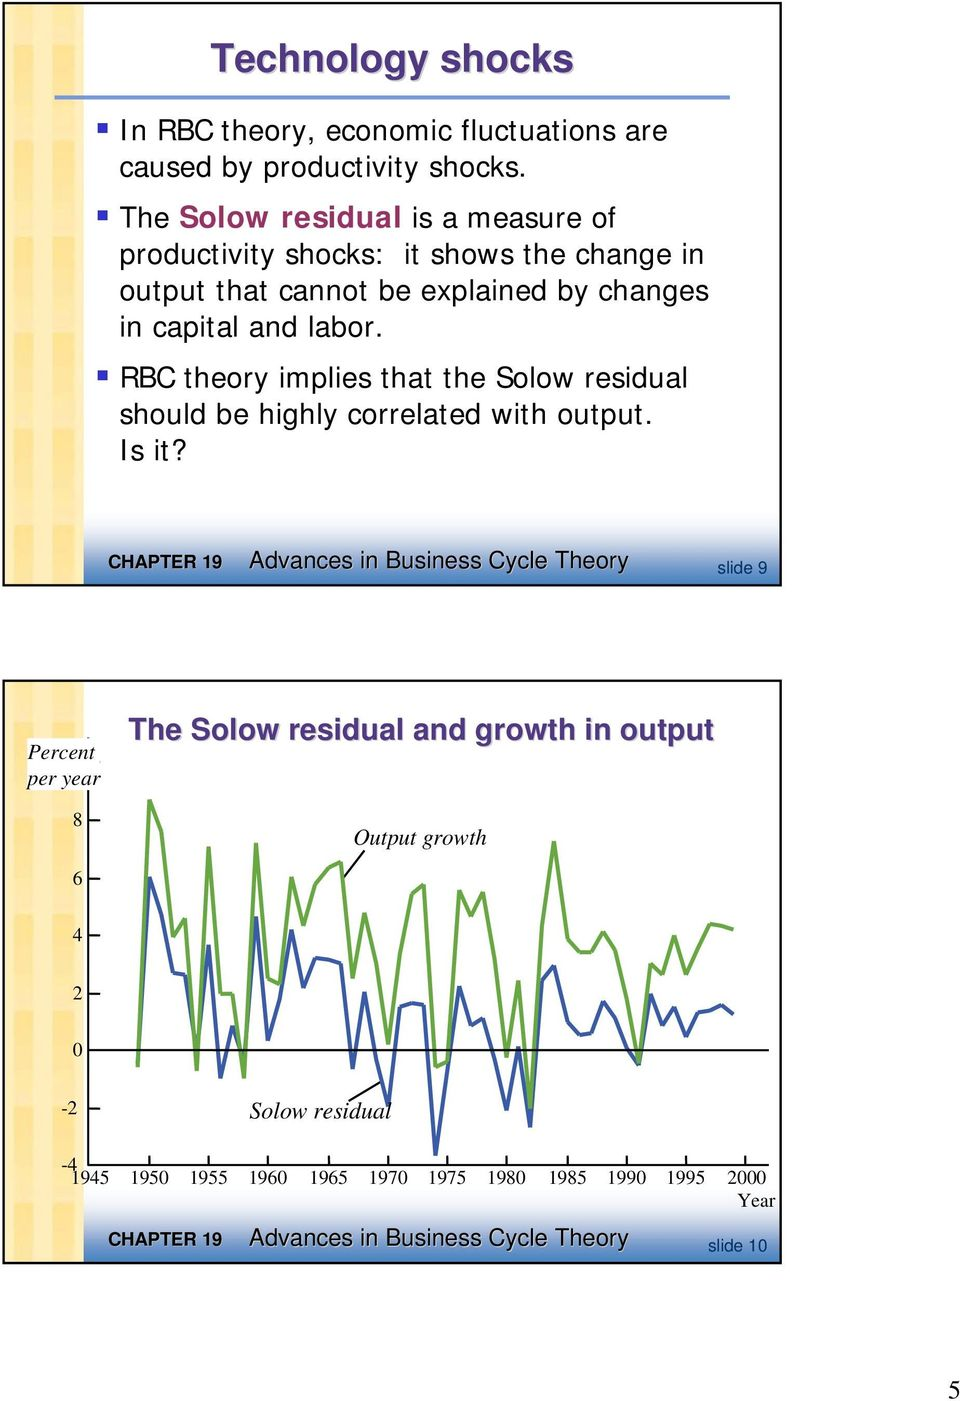 RBC theory implies that the Solow residual should be highly correlated with output. Is it?